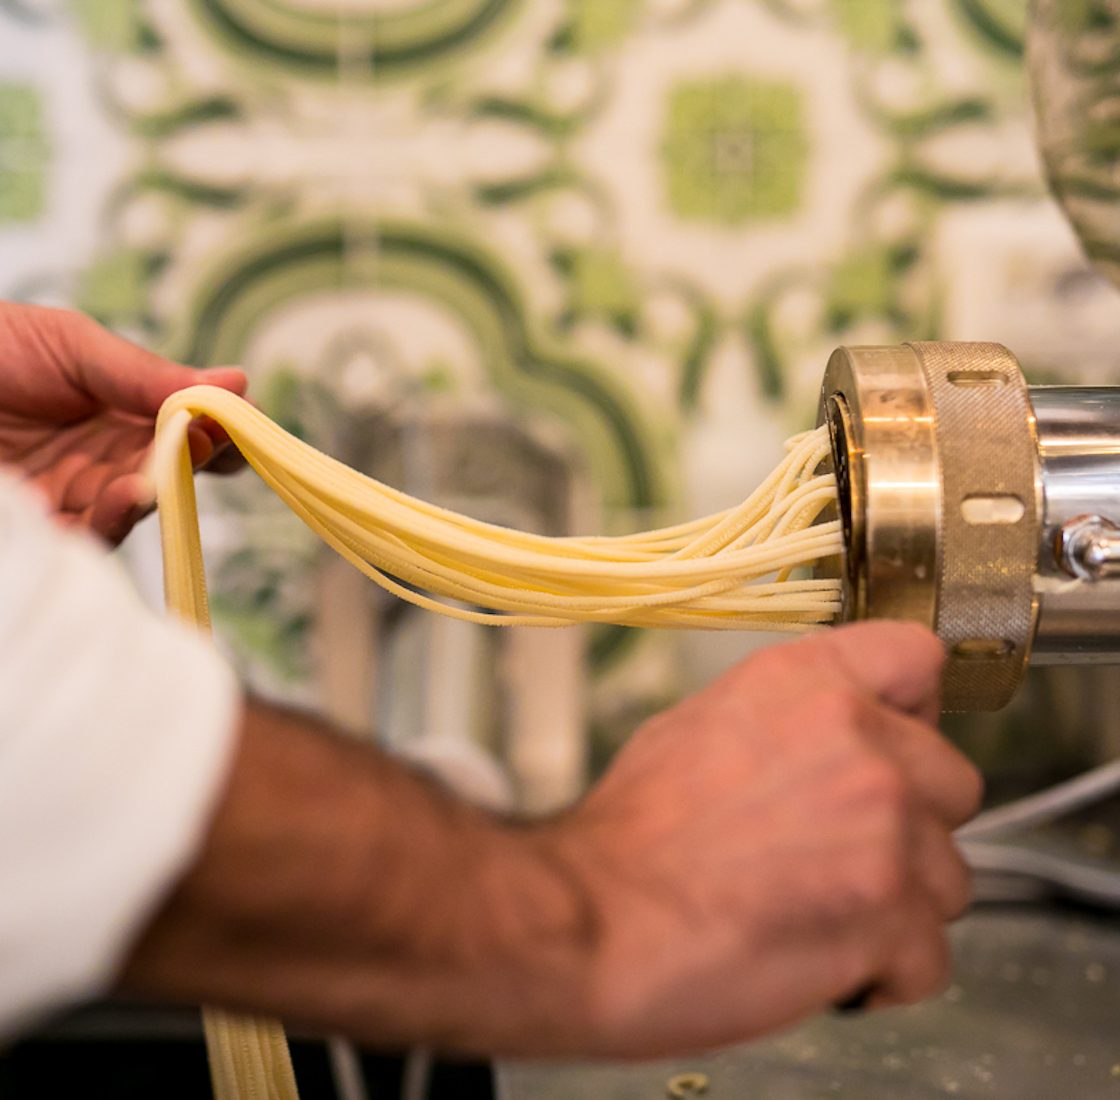 Luciano is taking fresh spaghetti from the pasta maker in his Restaurant in Rome